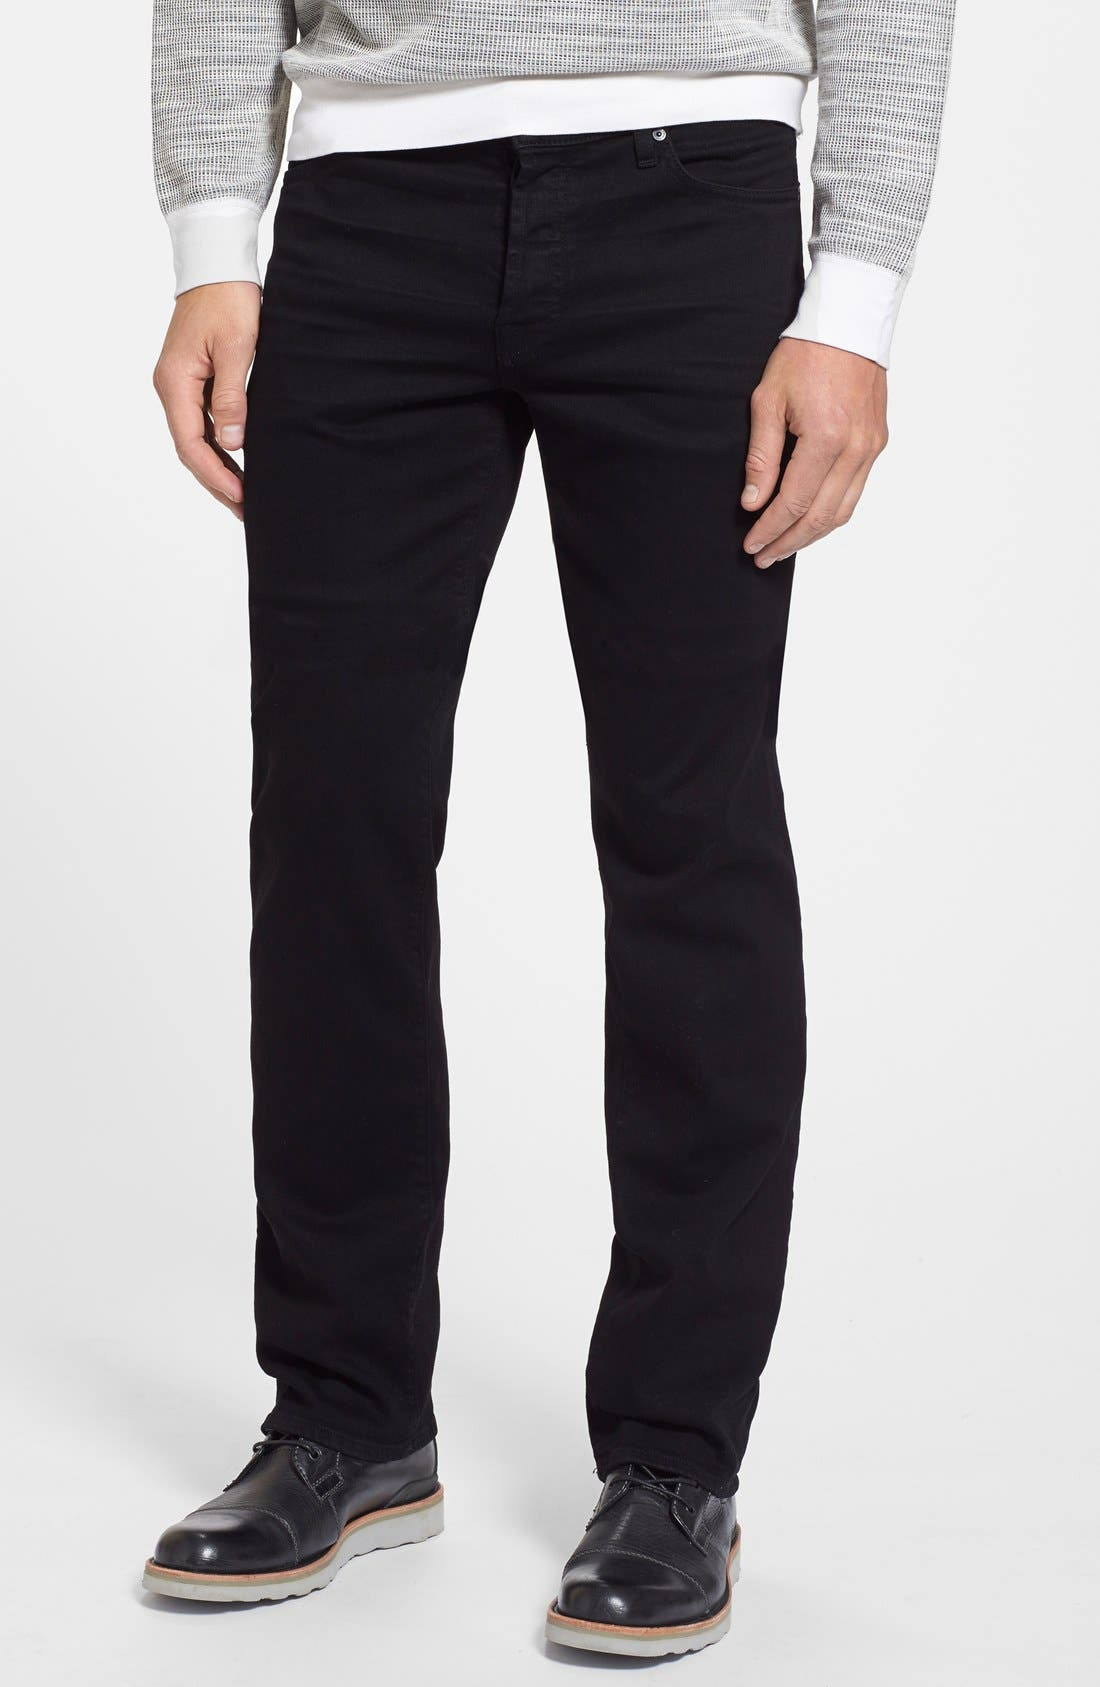 Alternate Image 1 Selected - 7 For All Mankind® The Standard - Luxe Performance Straight Leg Jeans (Nightshade Black)